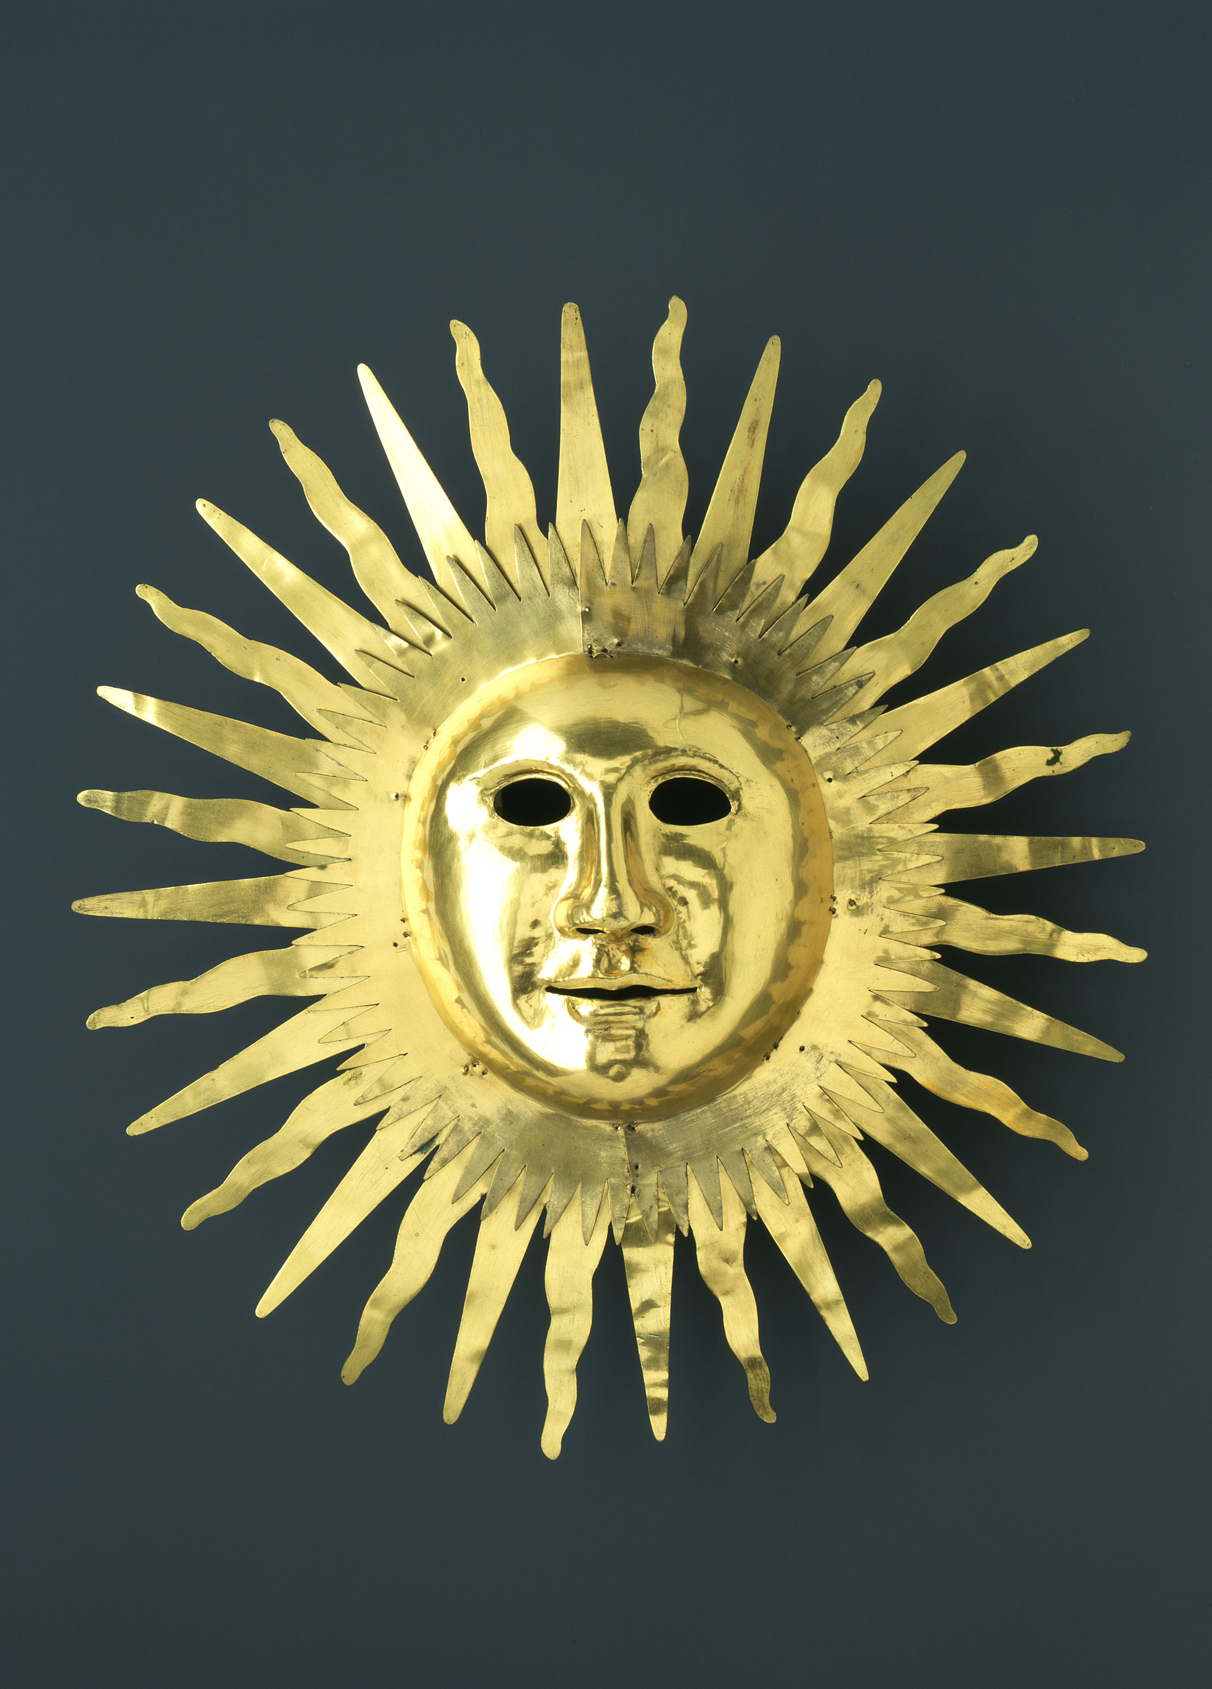 Sun mask of Apollo, by Johann Melchior Dinglinger, 1709. Dresden Armory, Germany.